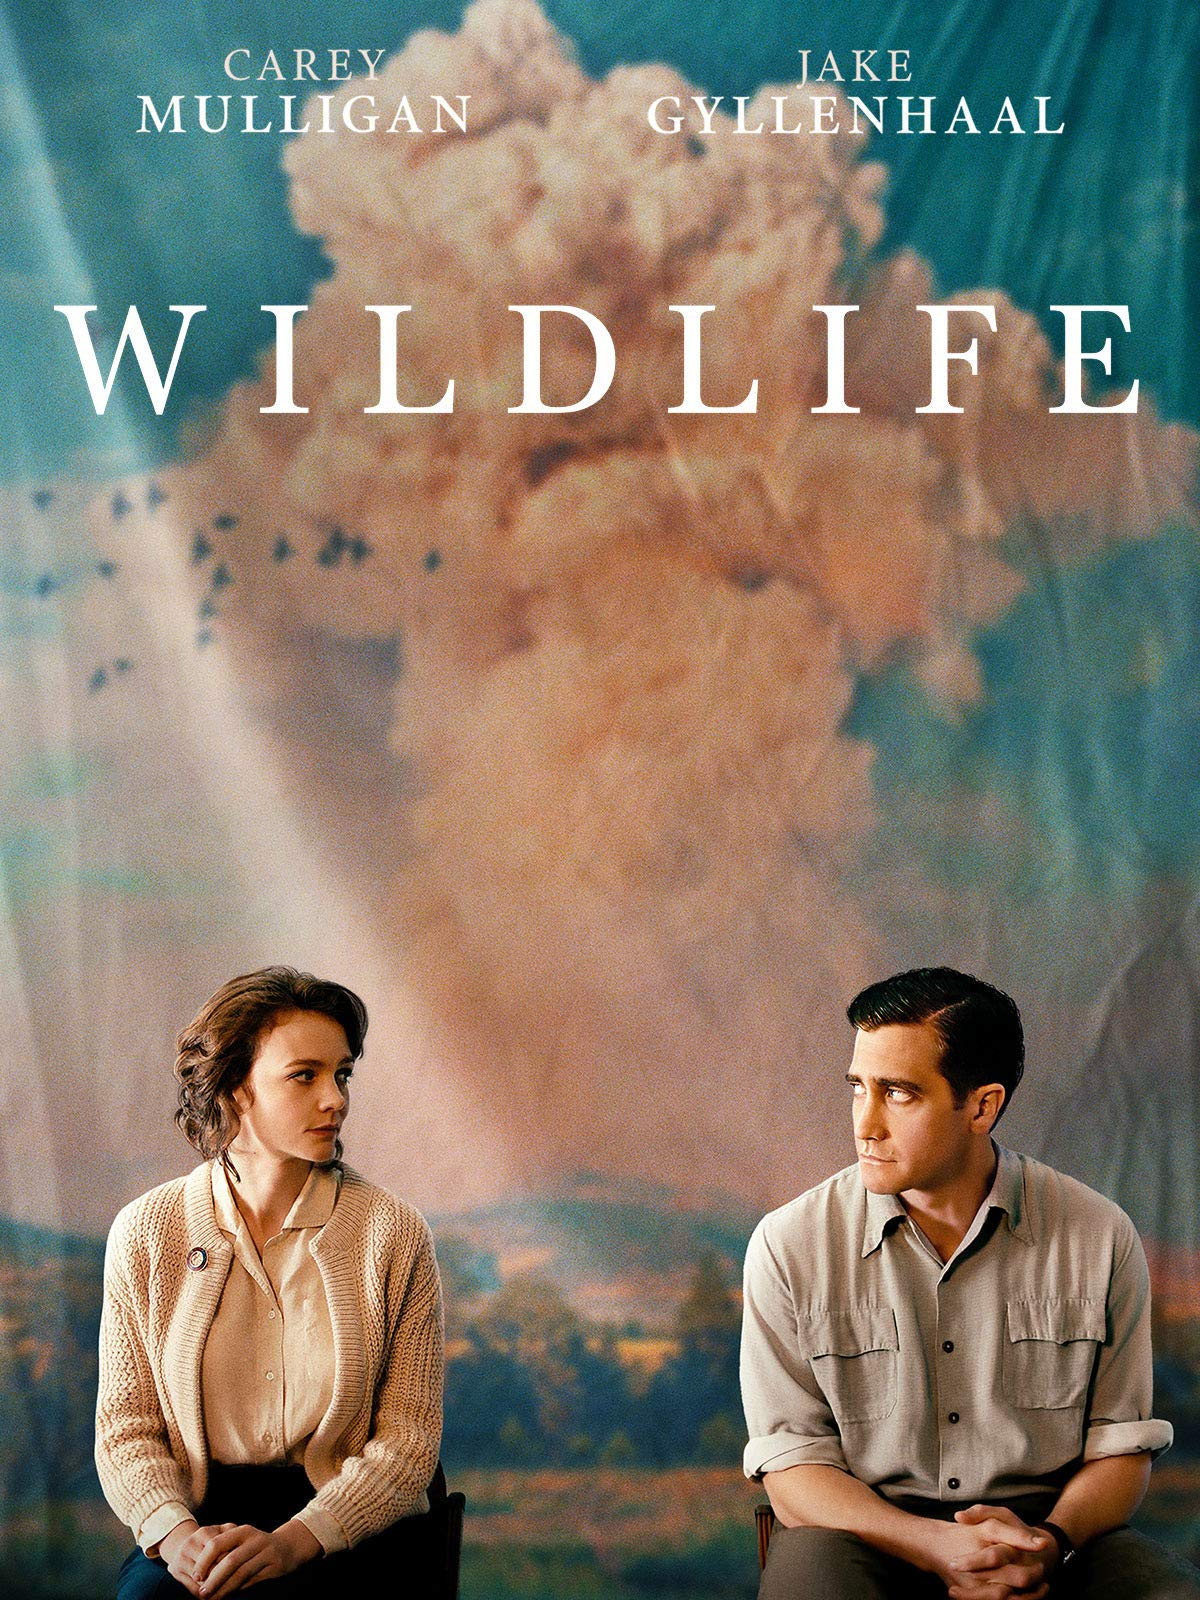 Amazon.com: Wildlife: Carey Mulligan, Ed Oxenbould, Bill ...